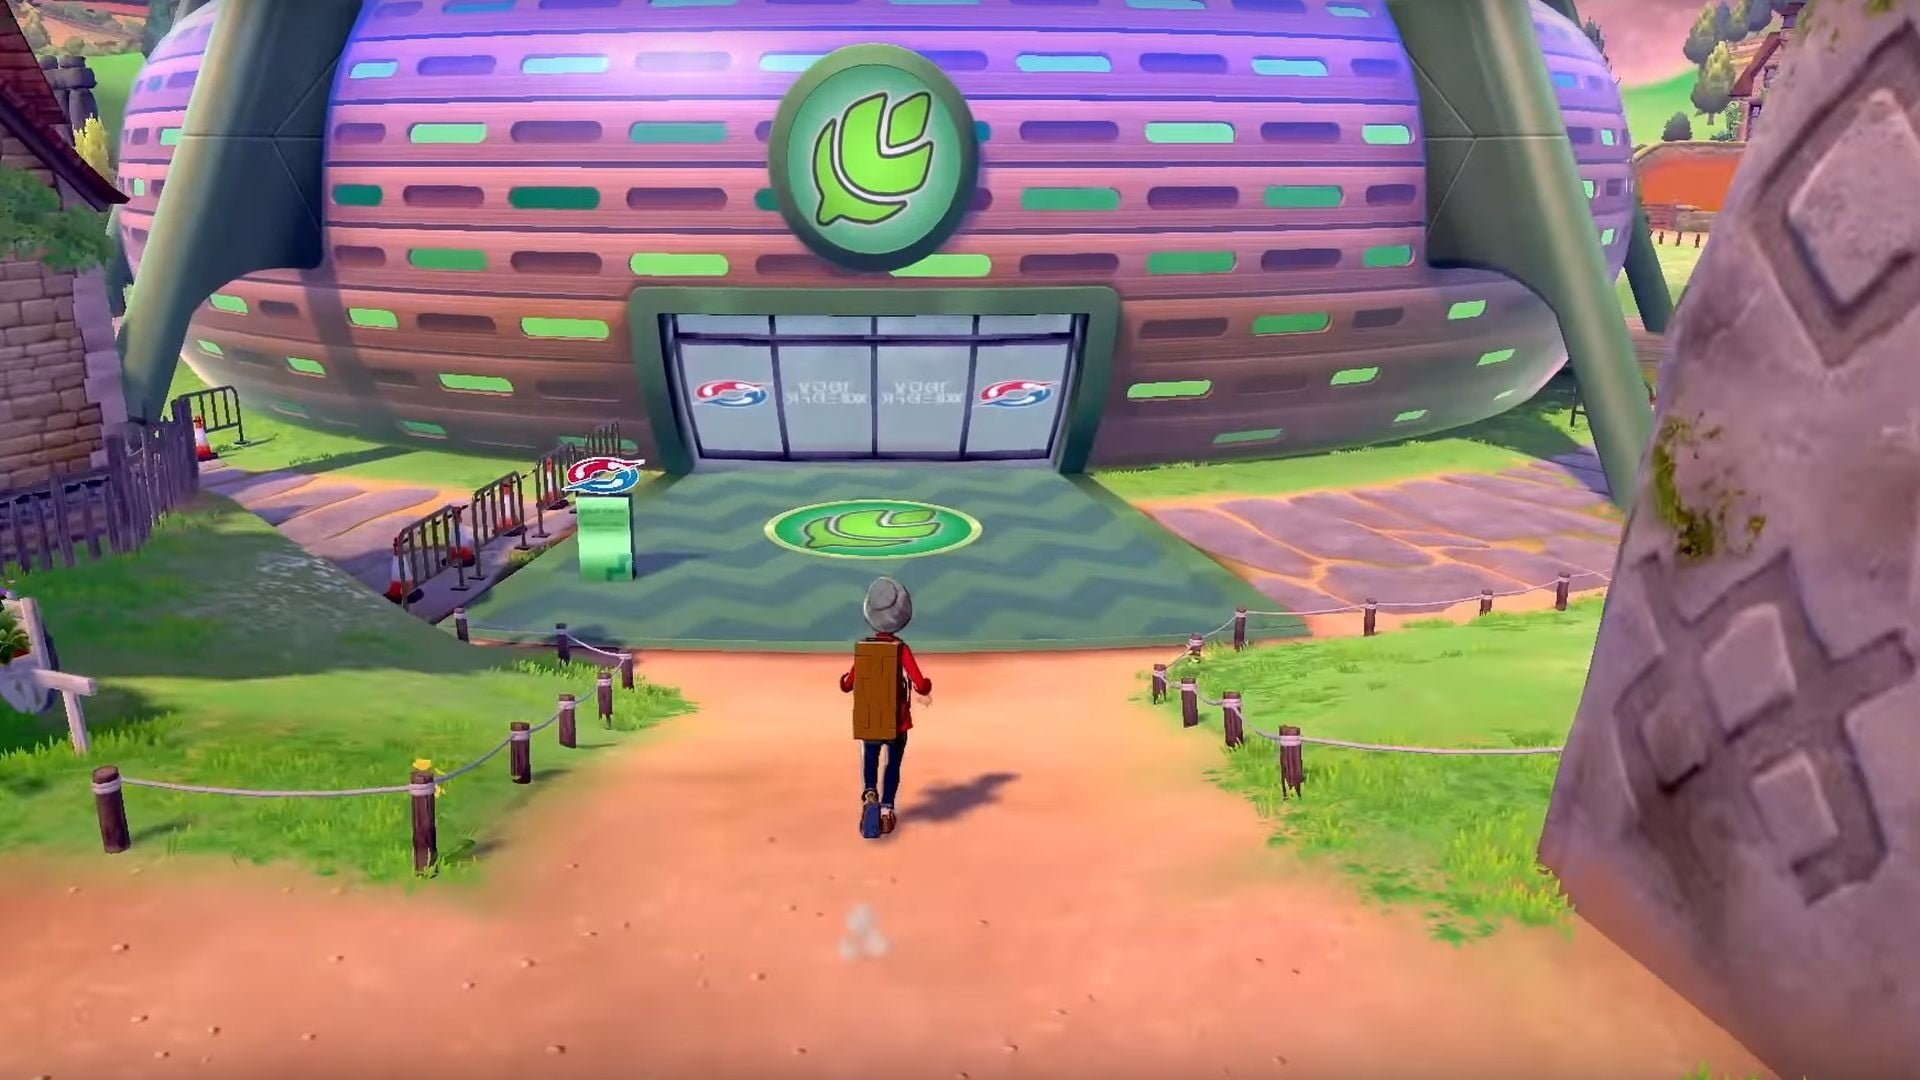 All Gym Leaders In Pokemon Sword And Shield Allgamers The ballonlea gym's leader is opal and it is the fifth galar gym. gym leaders in pokemon sword and shield